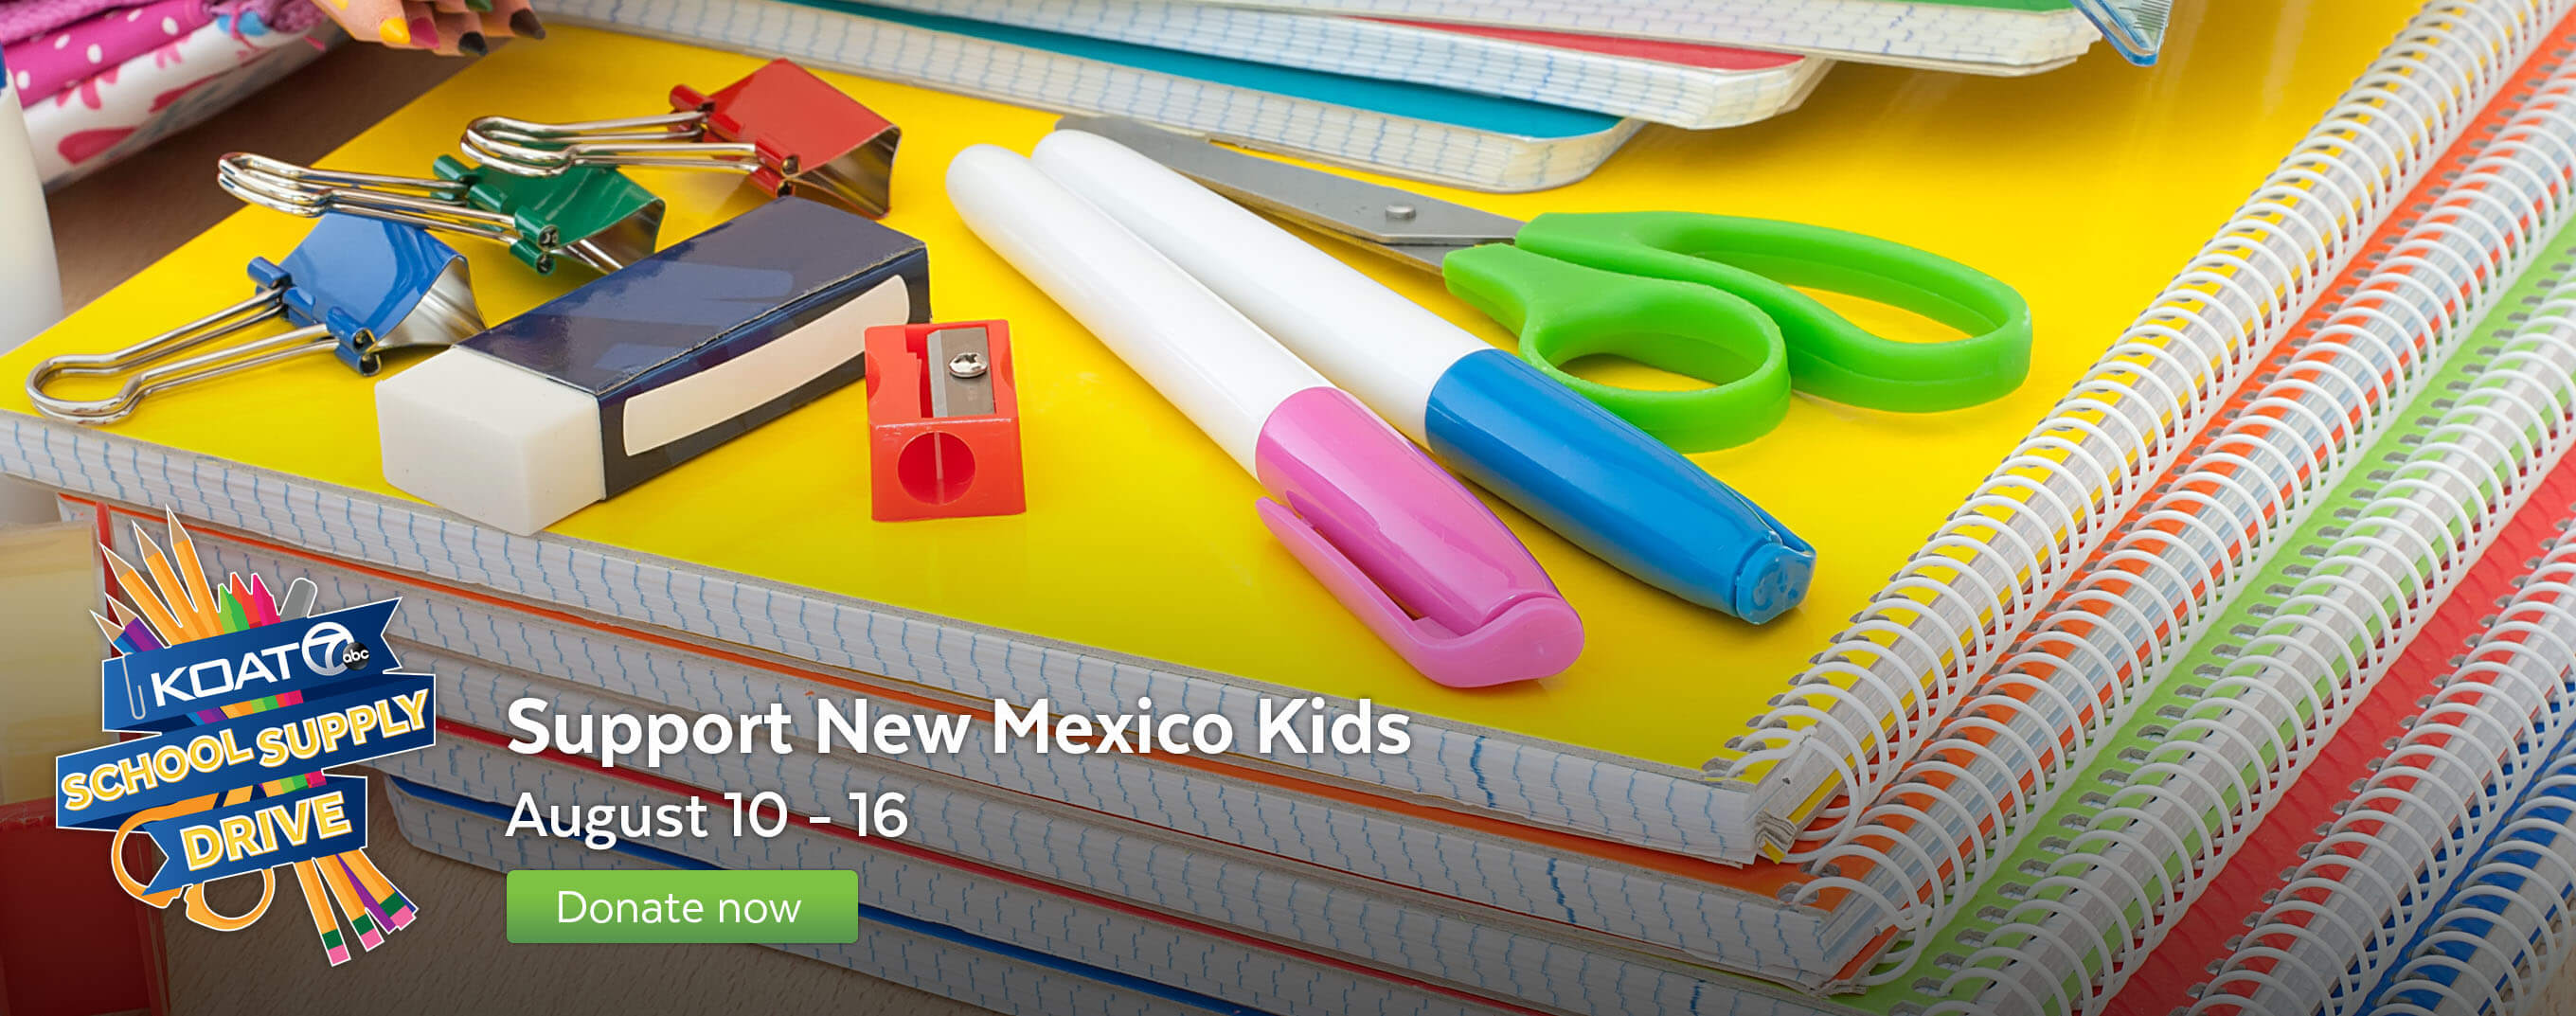 Support New Mexico Kids August 10-16 for the KOAT school supply drive.